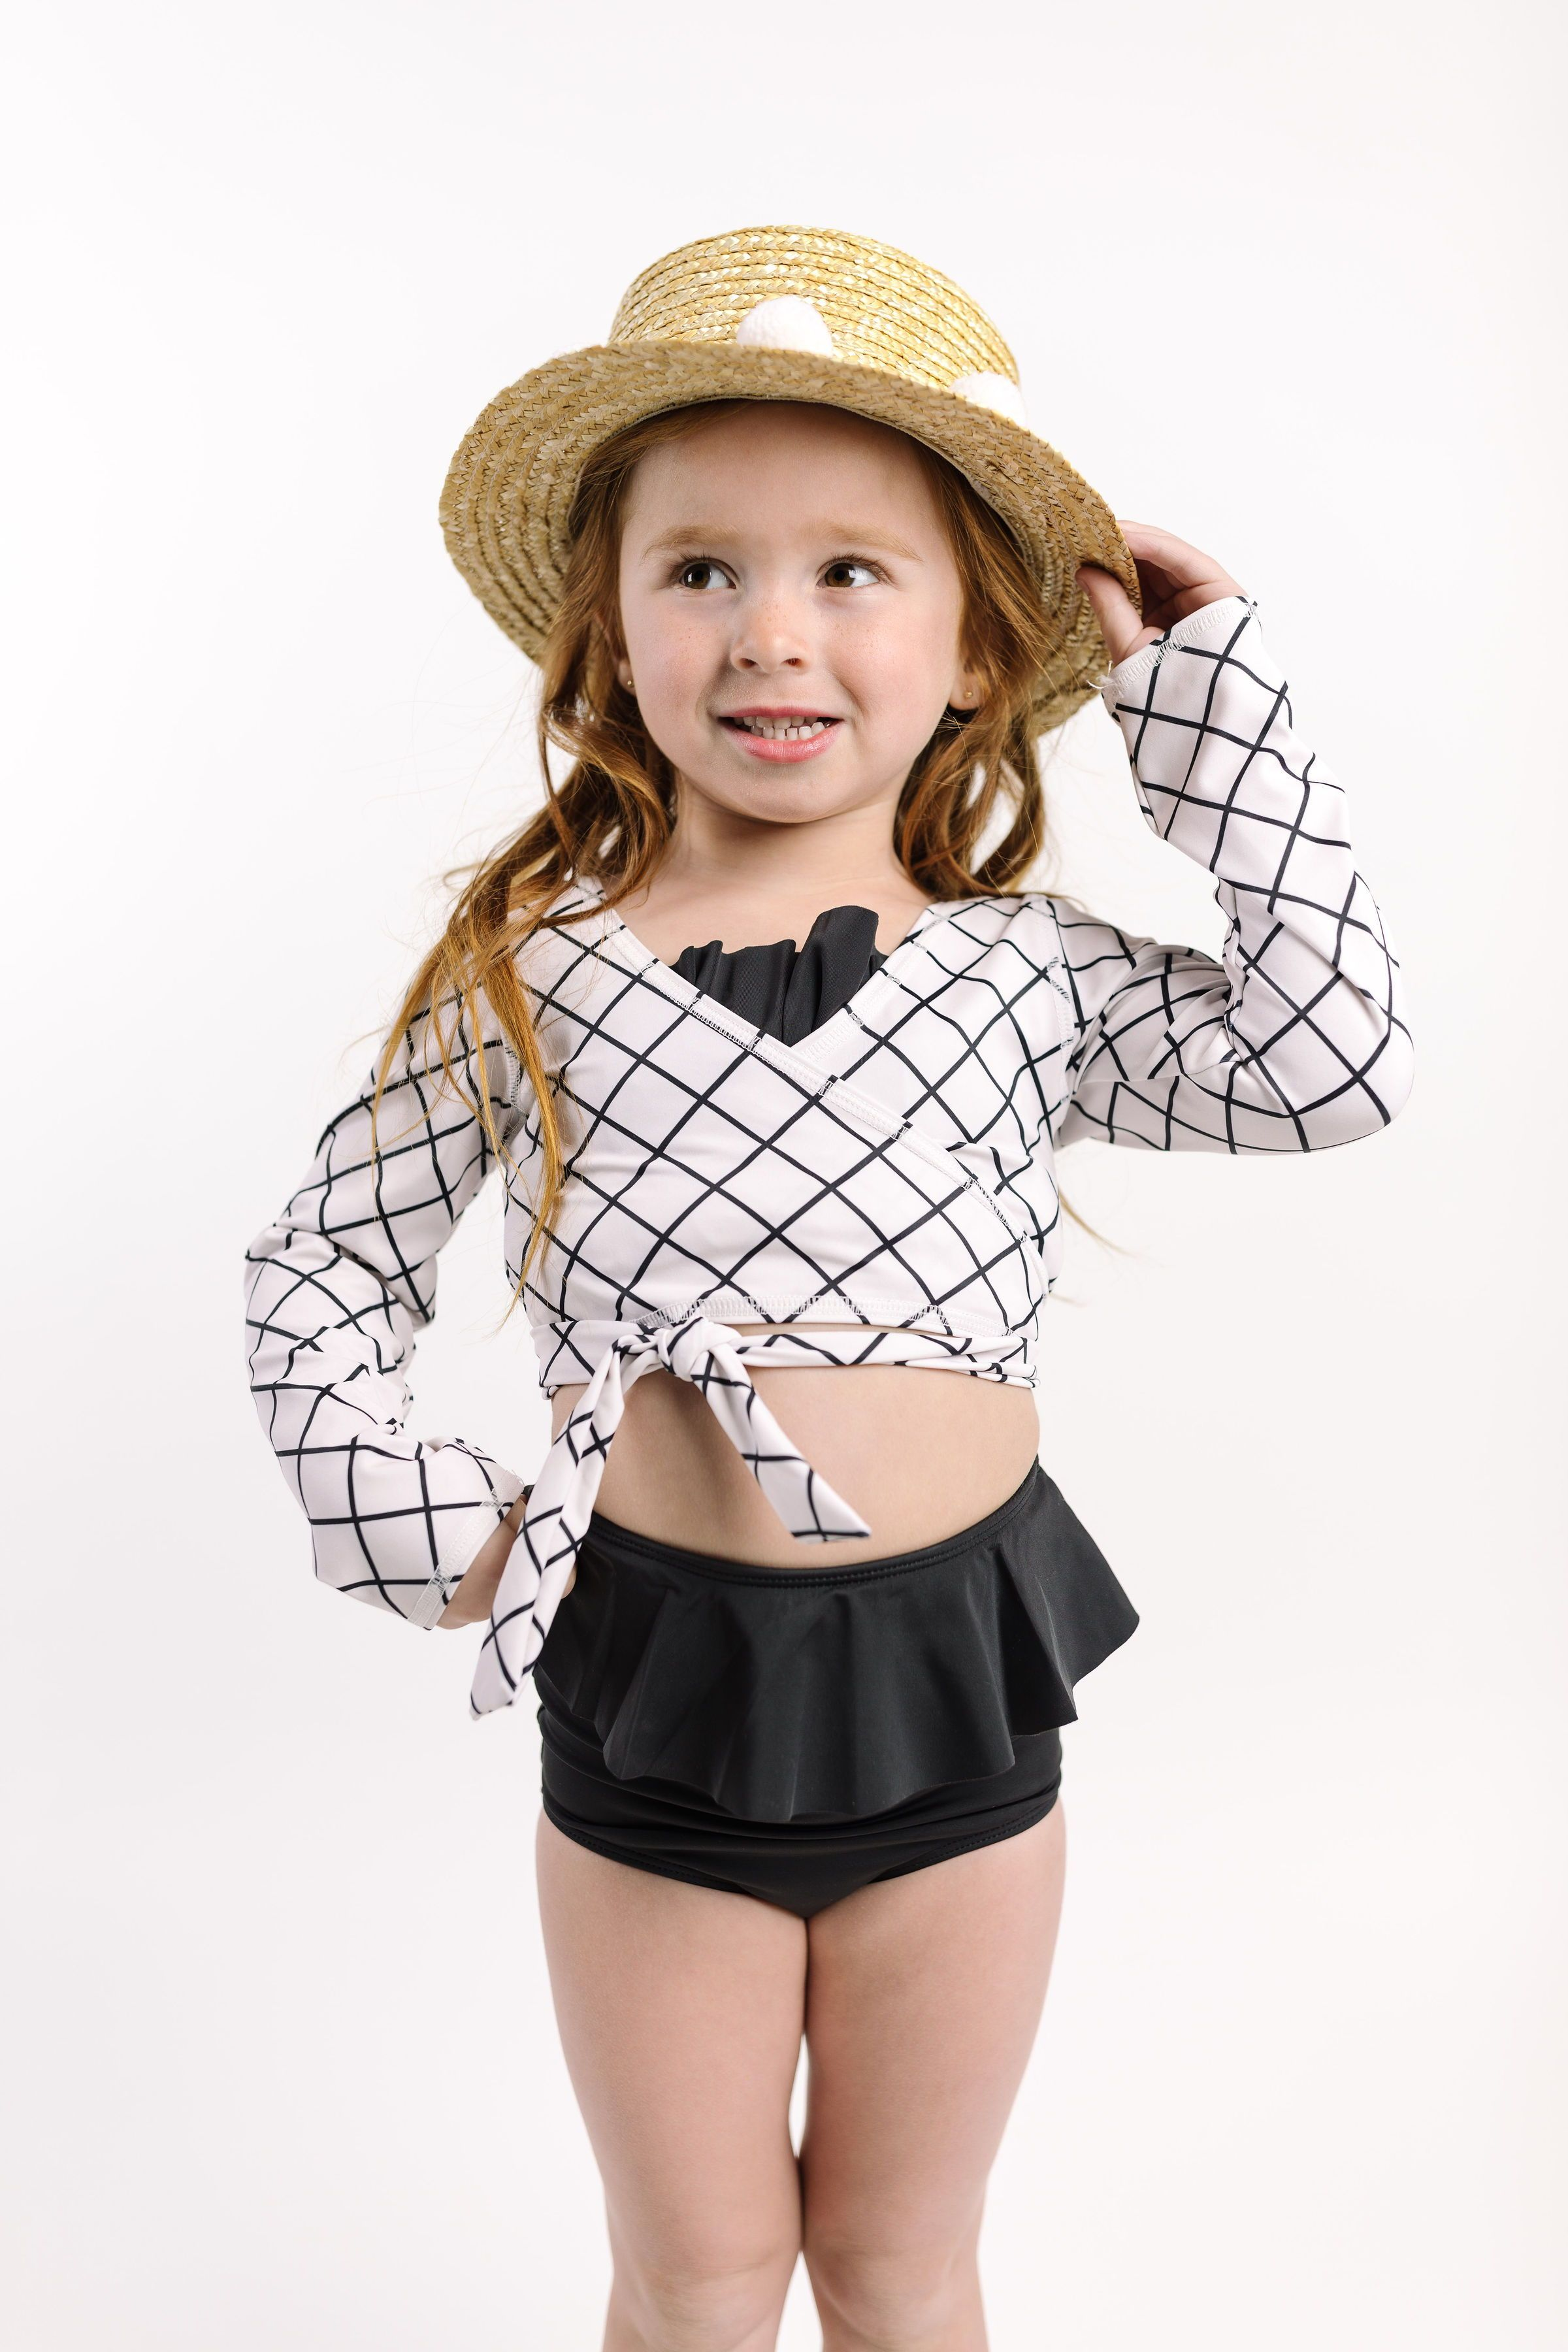 513322daf68 Swimsuit // 2019 swimsuit // 2019 swimsuit trends // Kid's Swimsuits //